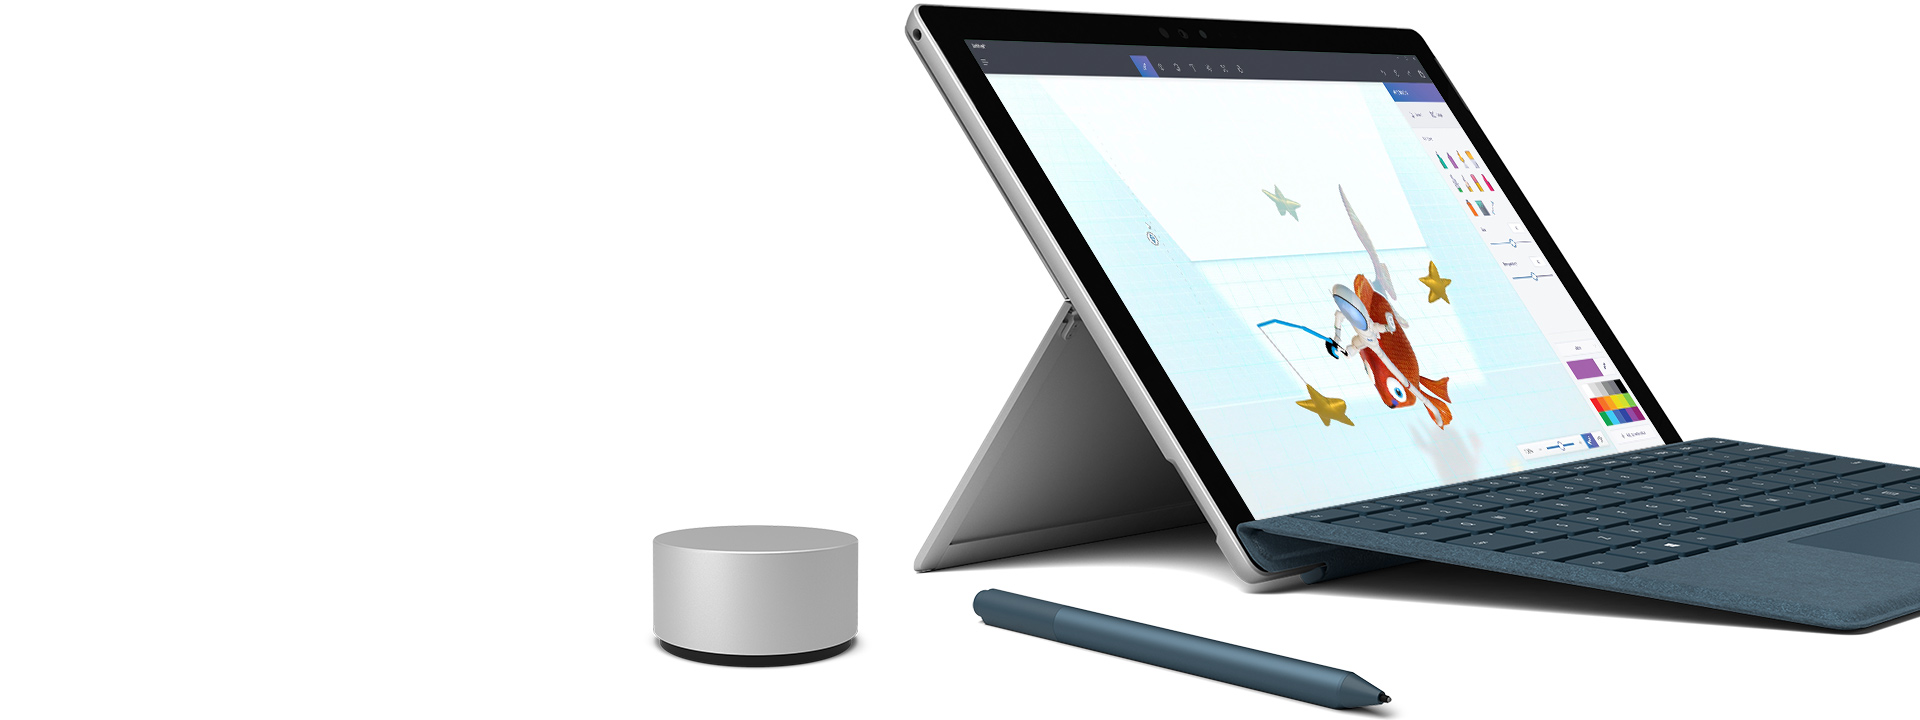 Surface Pro i laptoptilstand med Surface Dial, Pen og Type Cover.